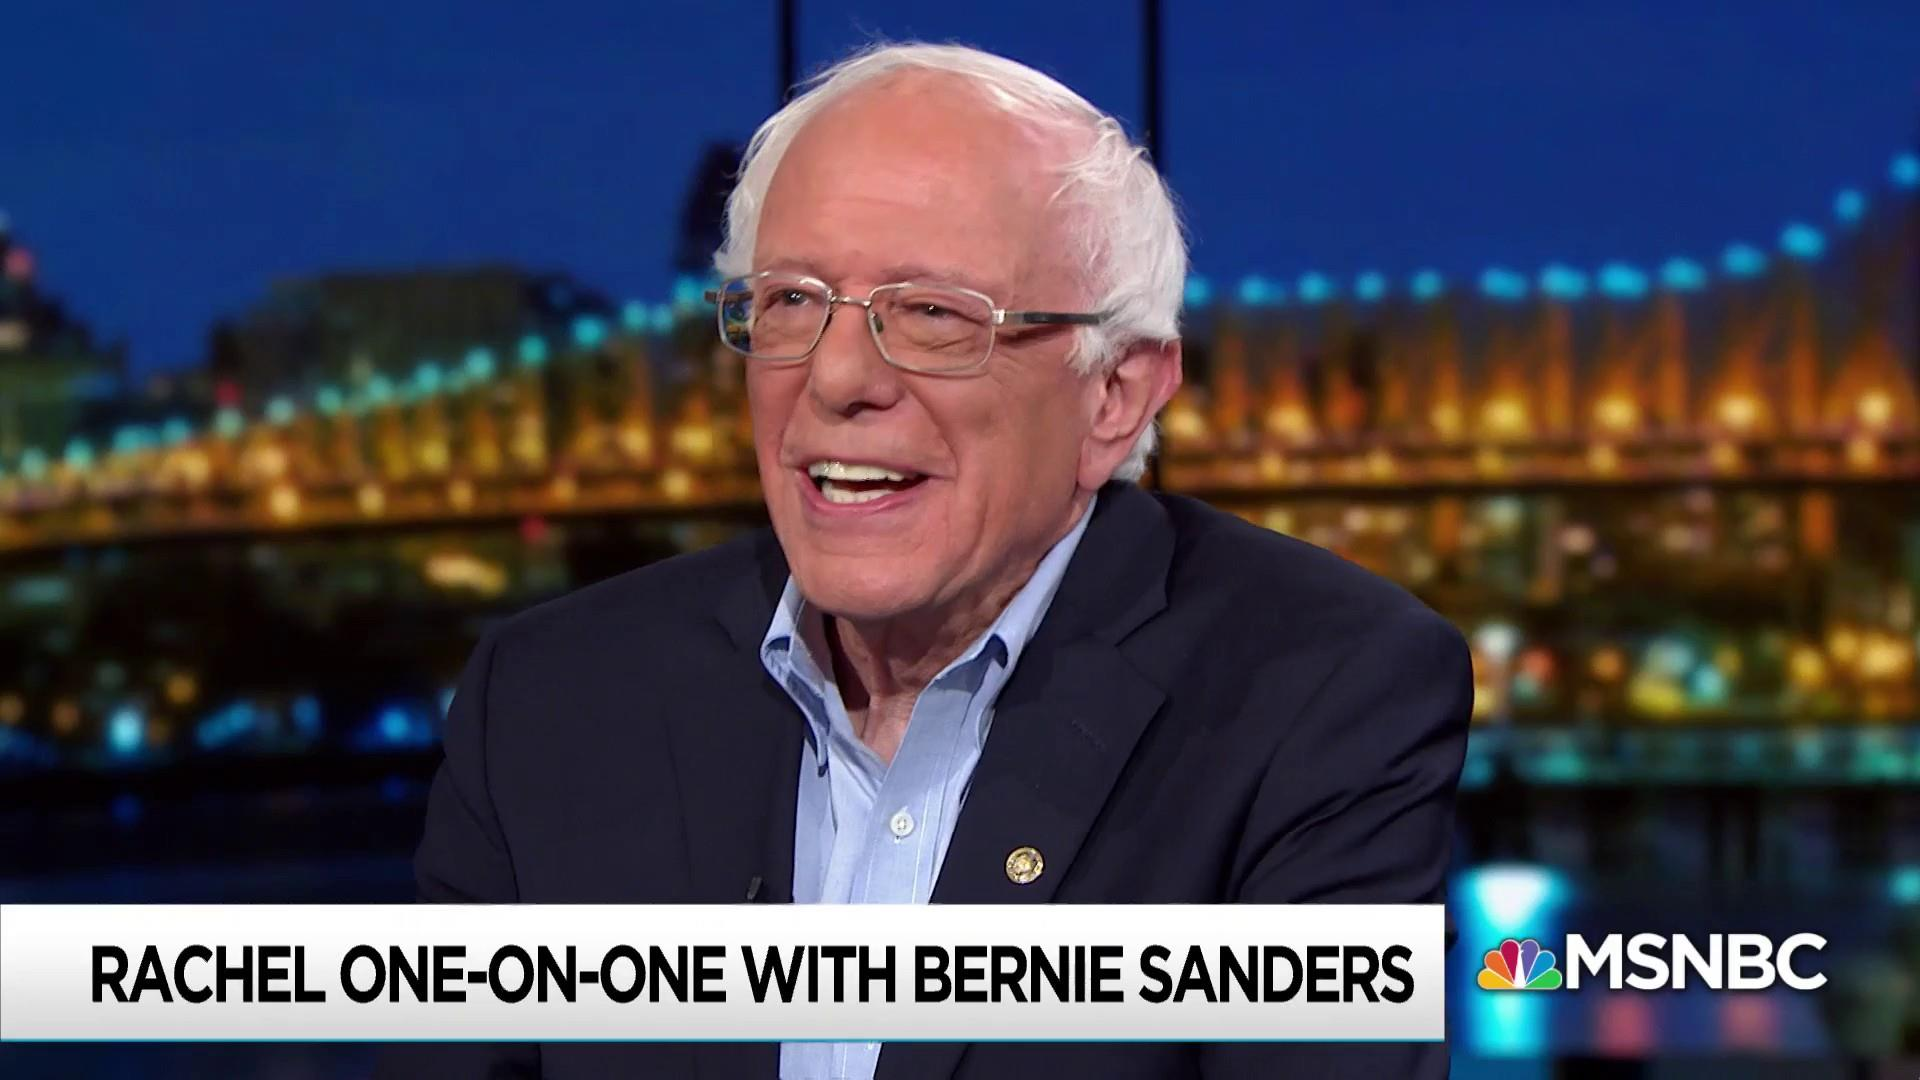 Sanders deeply satisfied to see his 2016 ideas in 2020 candidates